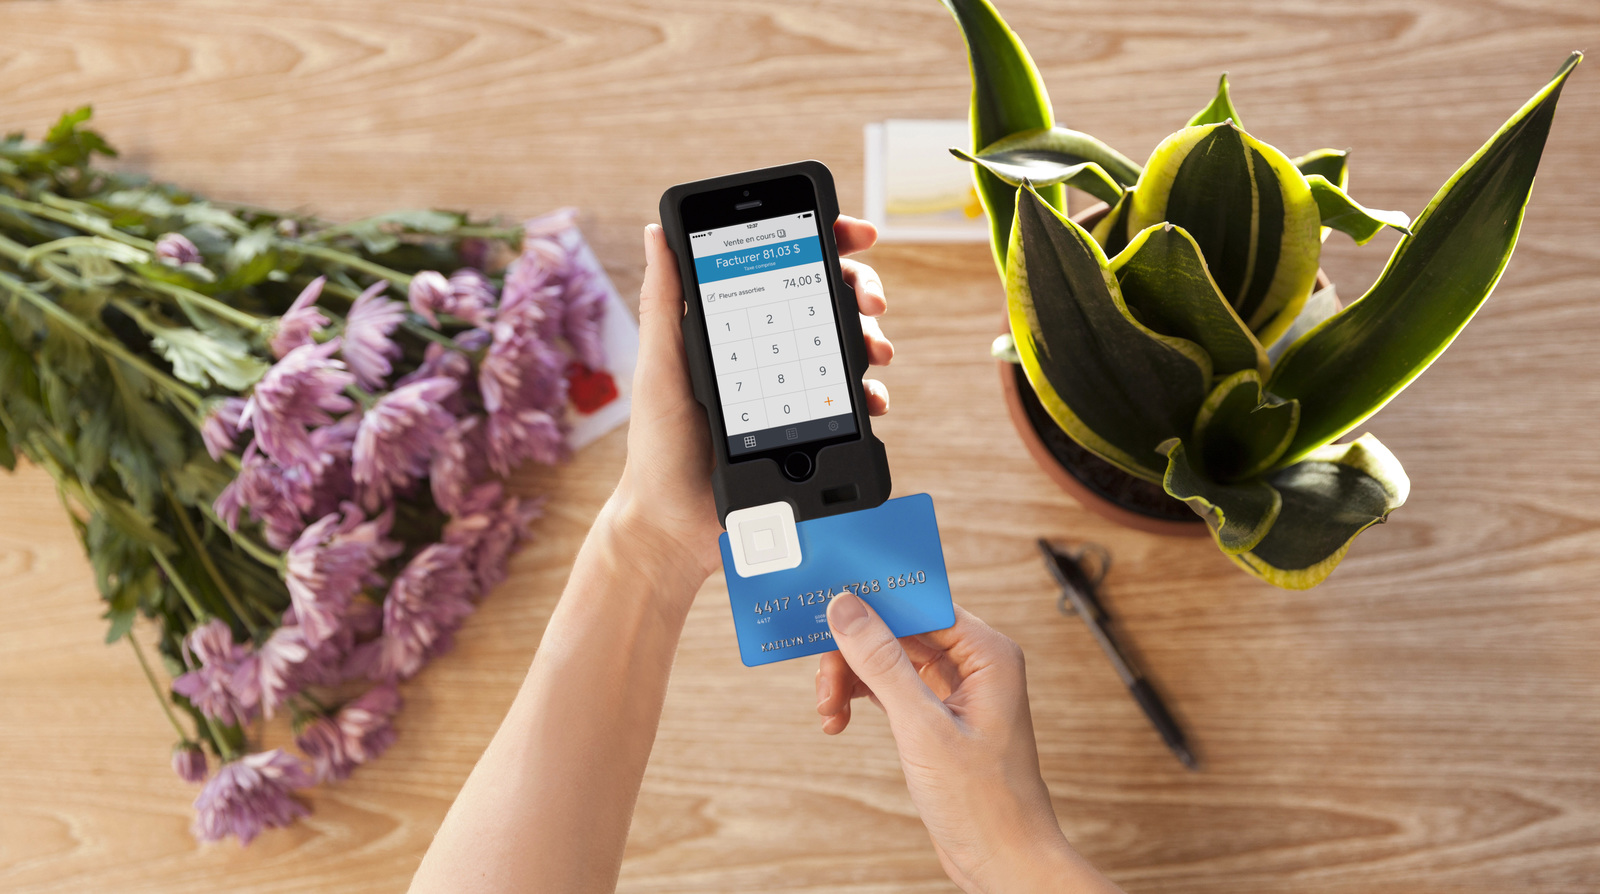 swiping a credit card on a mobile device